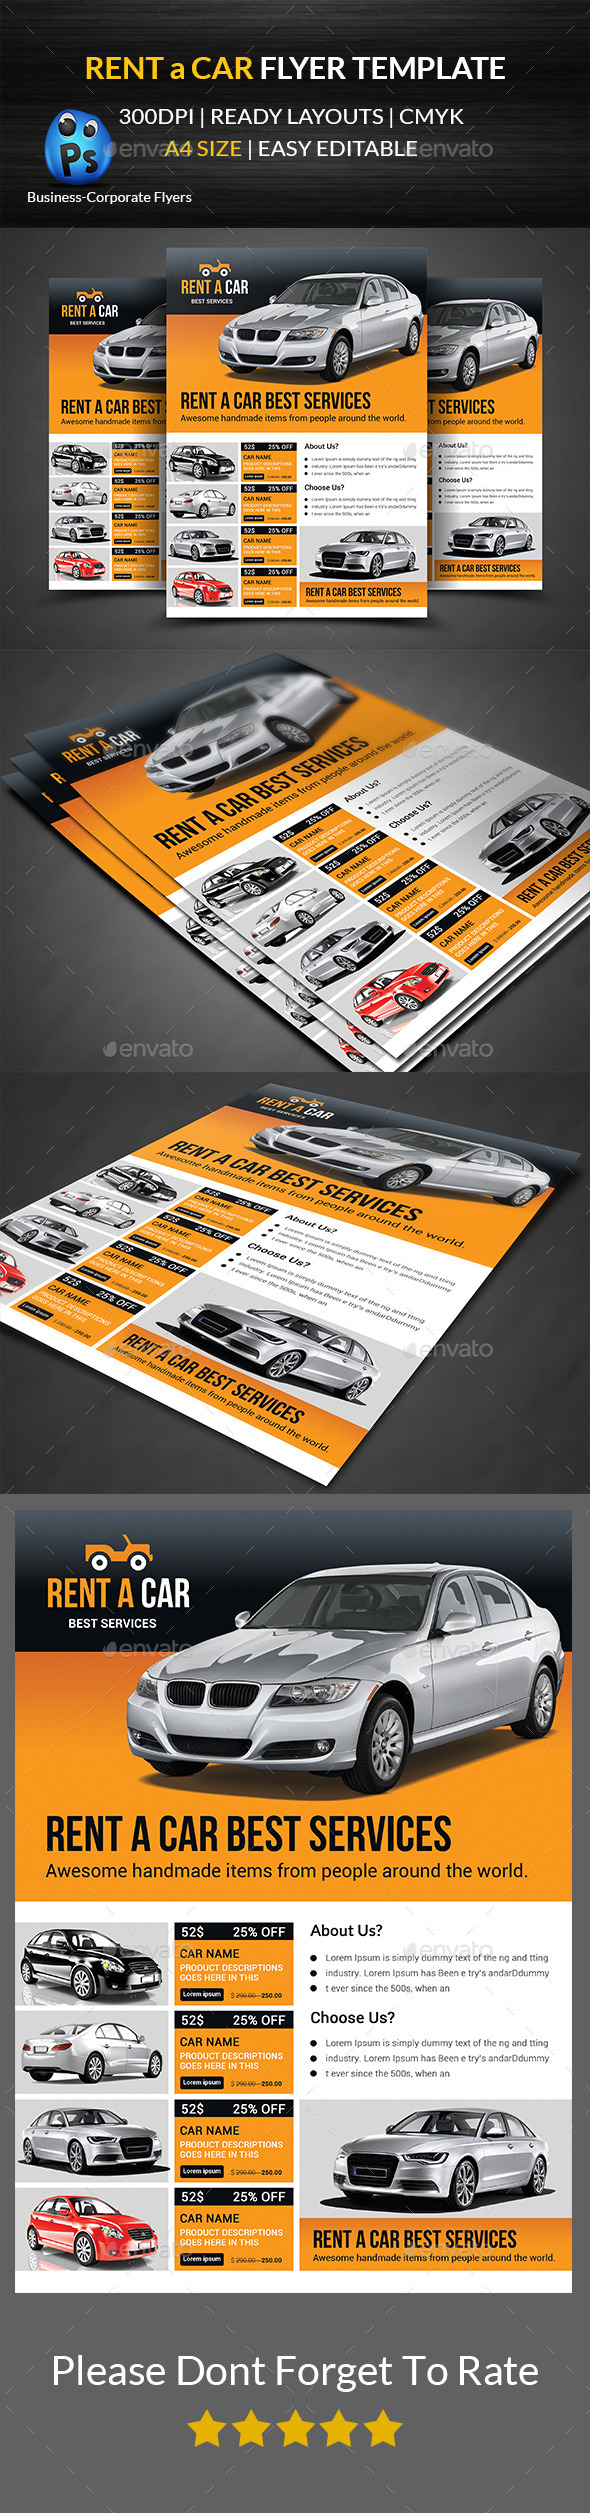 GraphicRiver Rent a Car Flyer Template 11912620